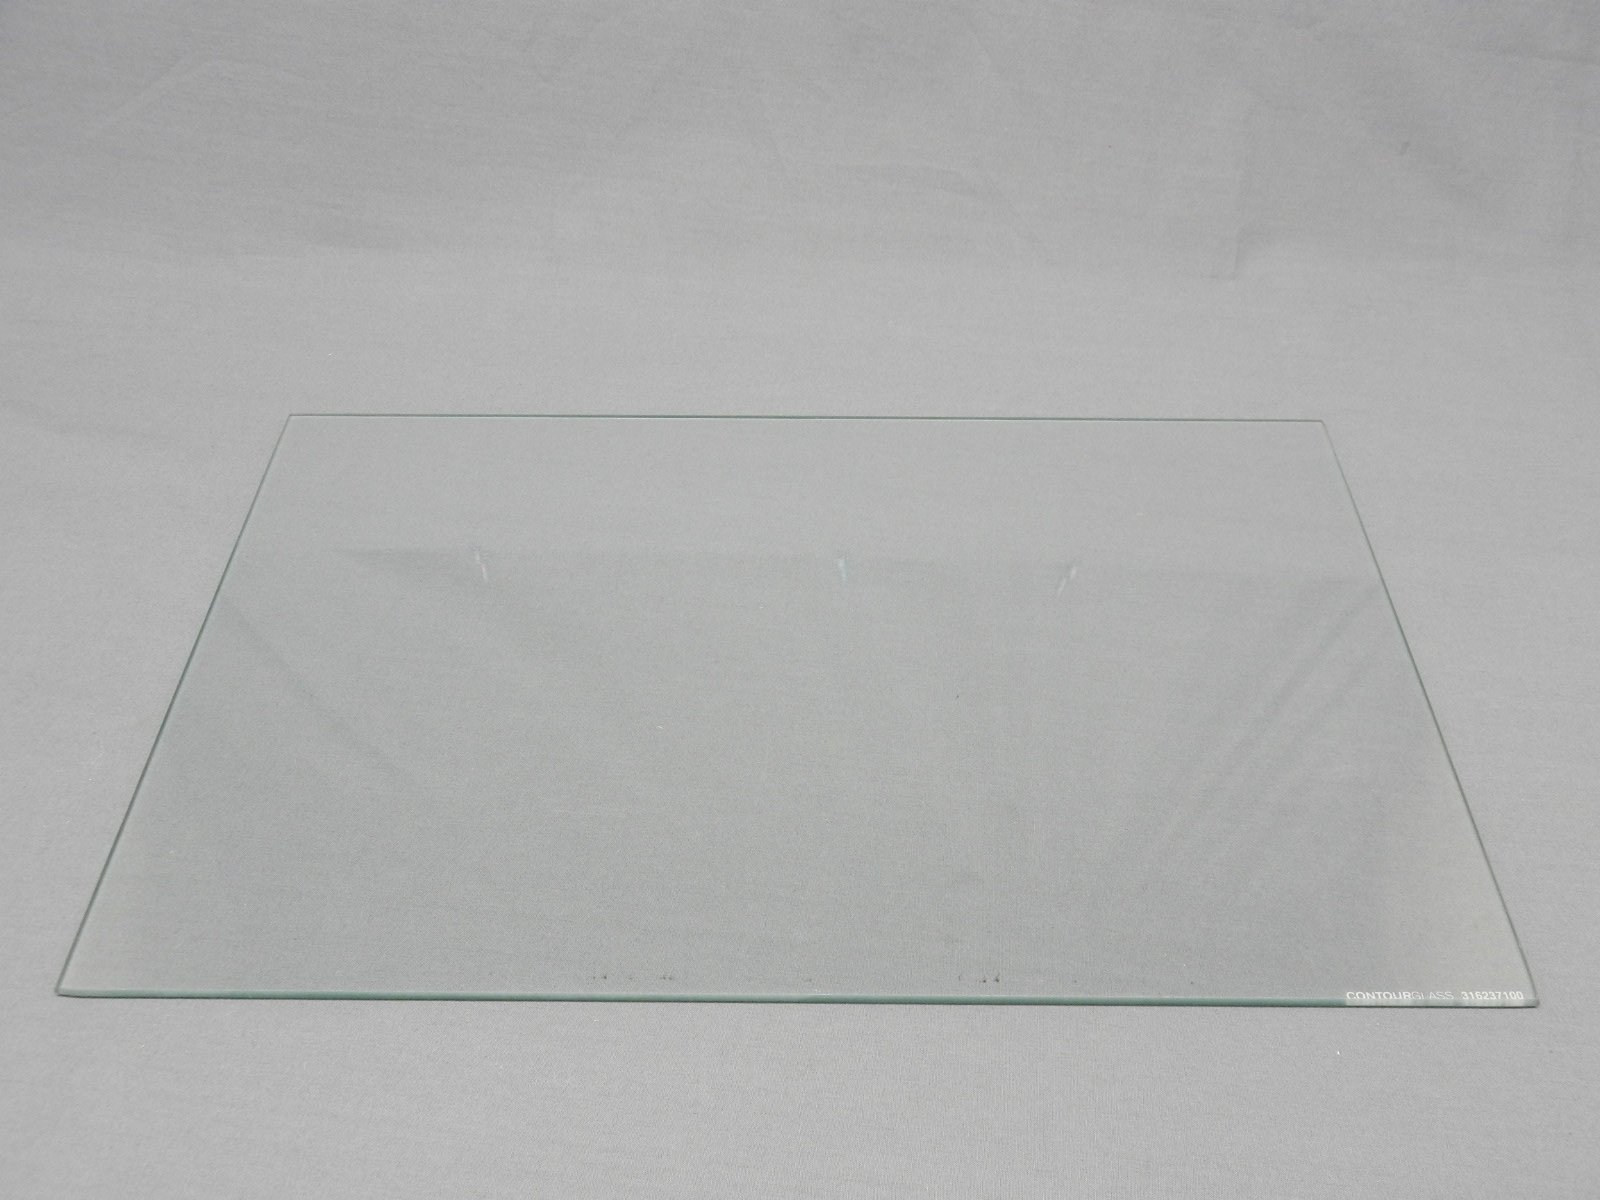 Cheap Glass Dishes In Oven Find Glass Dishes In Oven Deals On Line